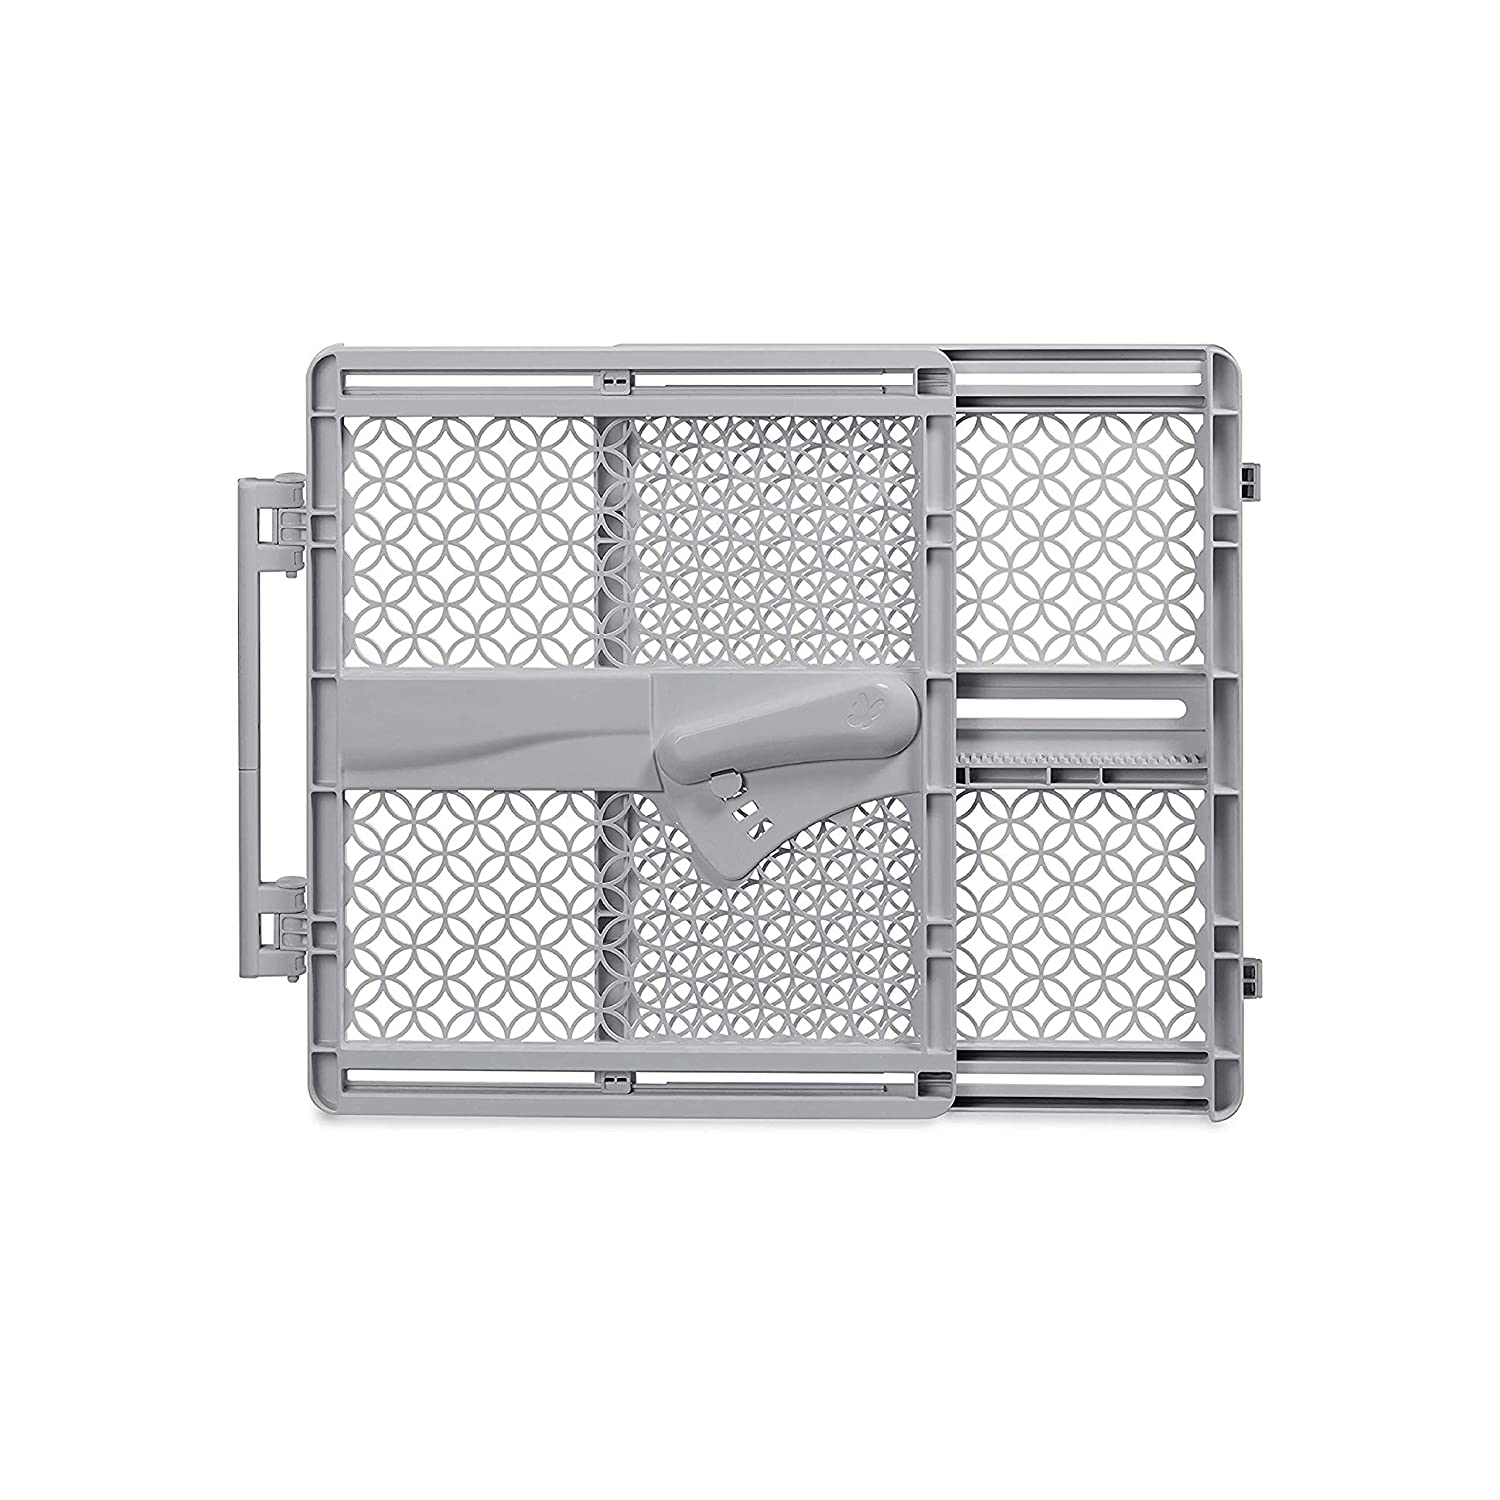 """Summer Infant Indoor & Outdoor Multi-Function Walk-Thru Plastic Gate Baby Gate, Gray – 28"""" Tall, Fits Openings 27""""-41"""" Wide Without Hinge and 26""""-42"""" Wide with Hinge, Baby and Pet Gate"""